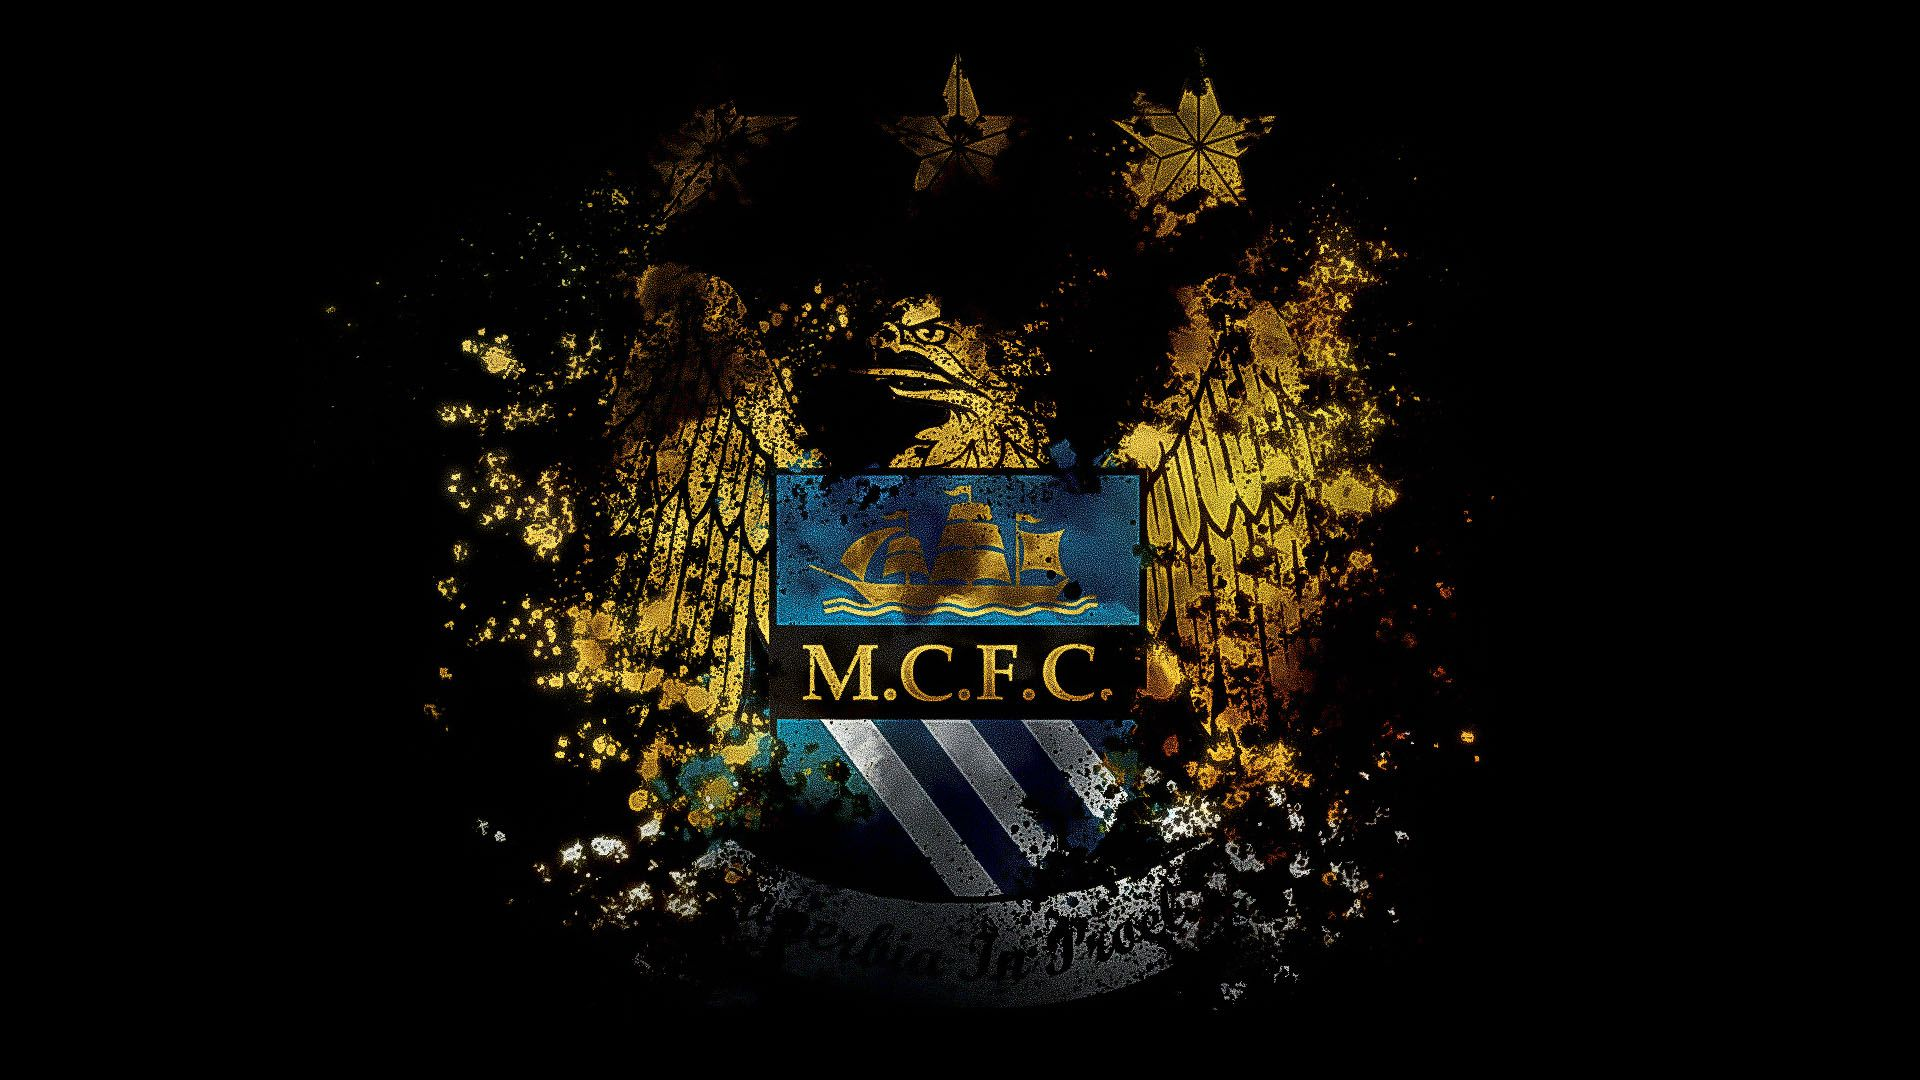 Manchester city wallpaper sports pinterest city wallpaper manchester city logo wallpaper 1920 x 235 kb voltagebd Choice Image